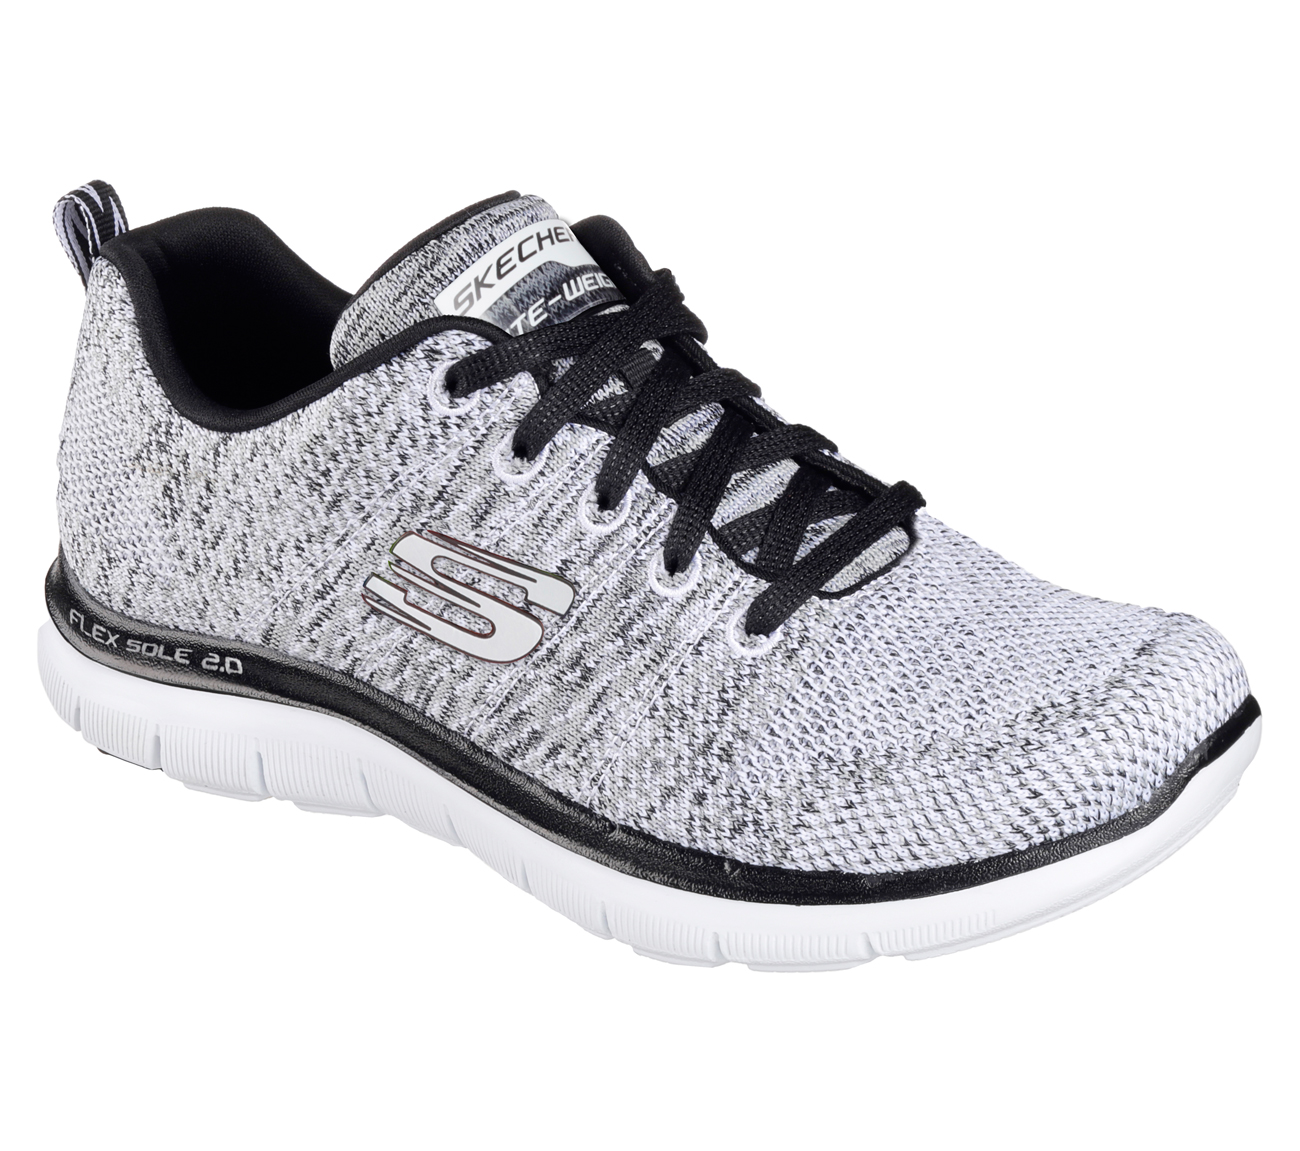 Skechers Grise